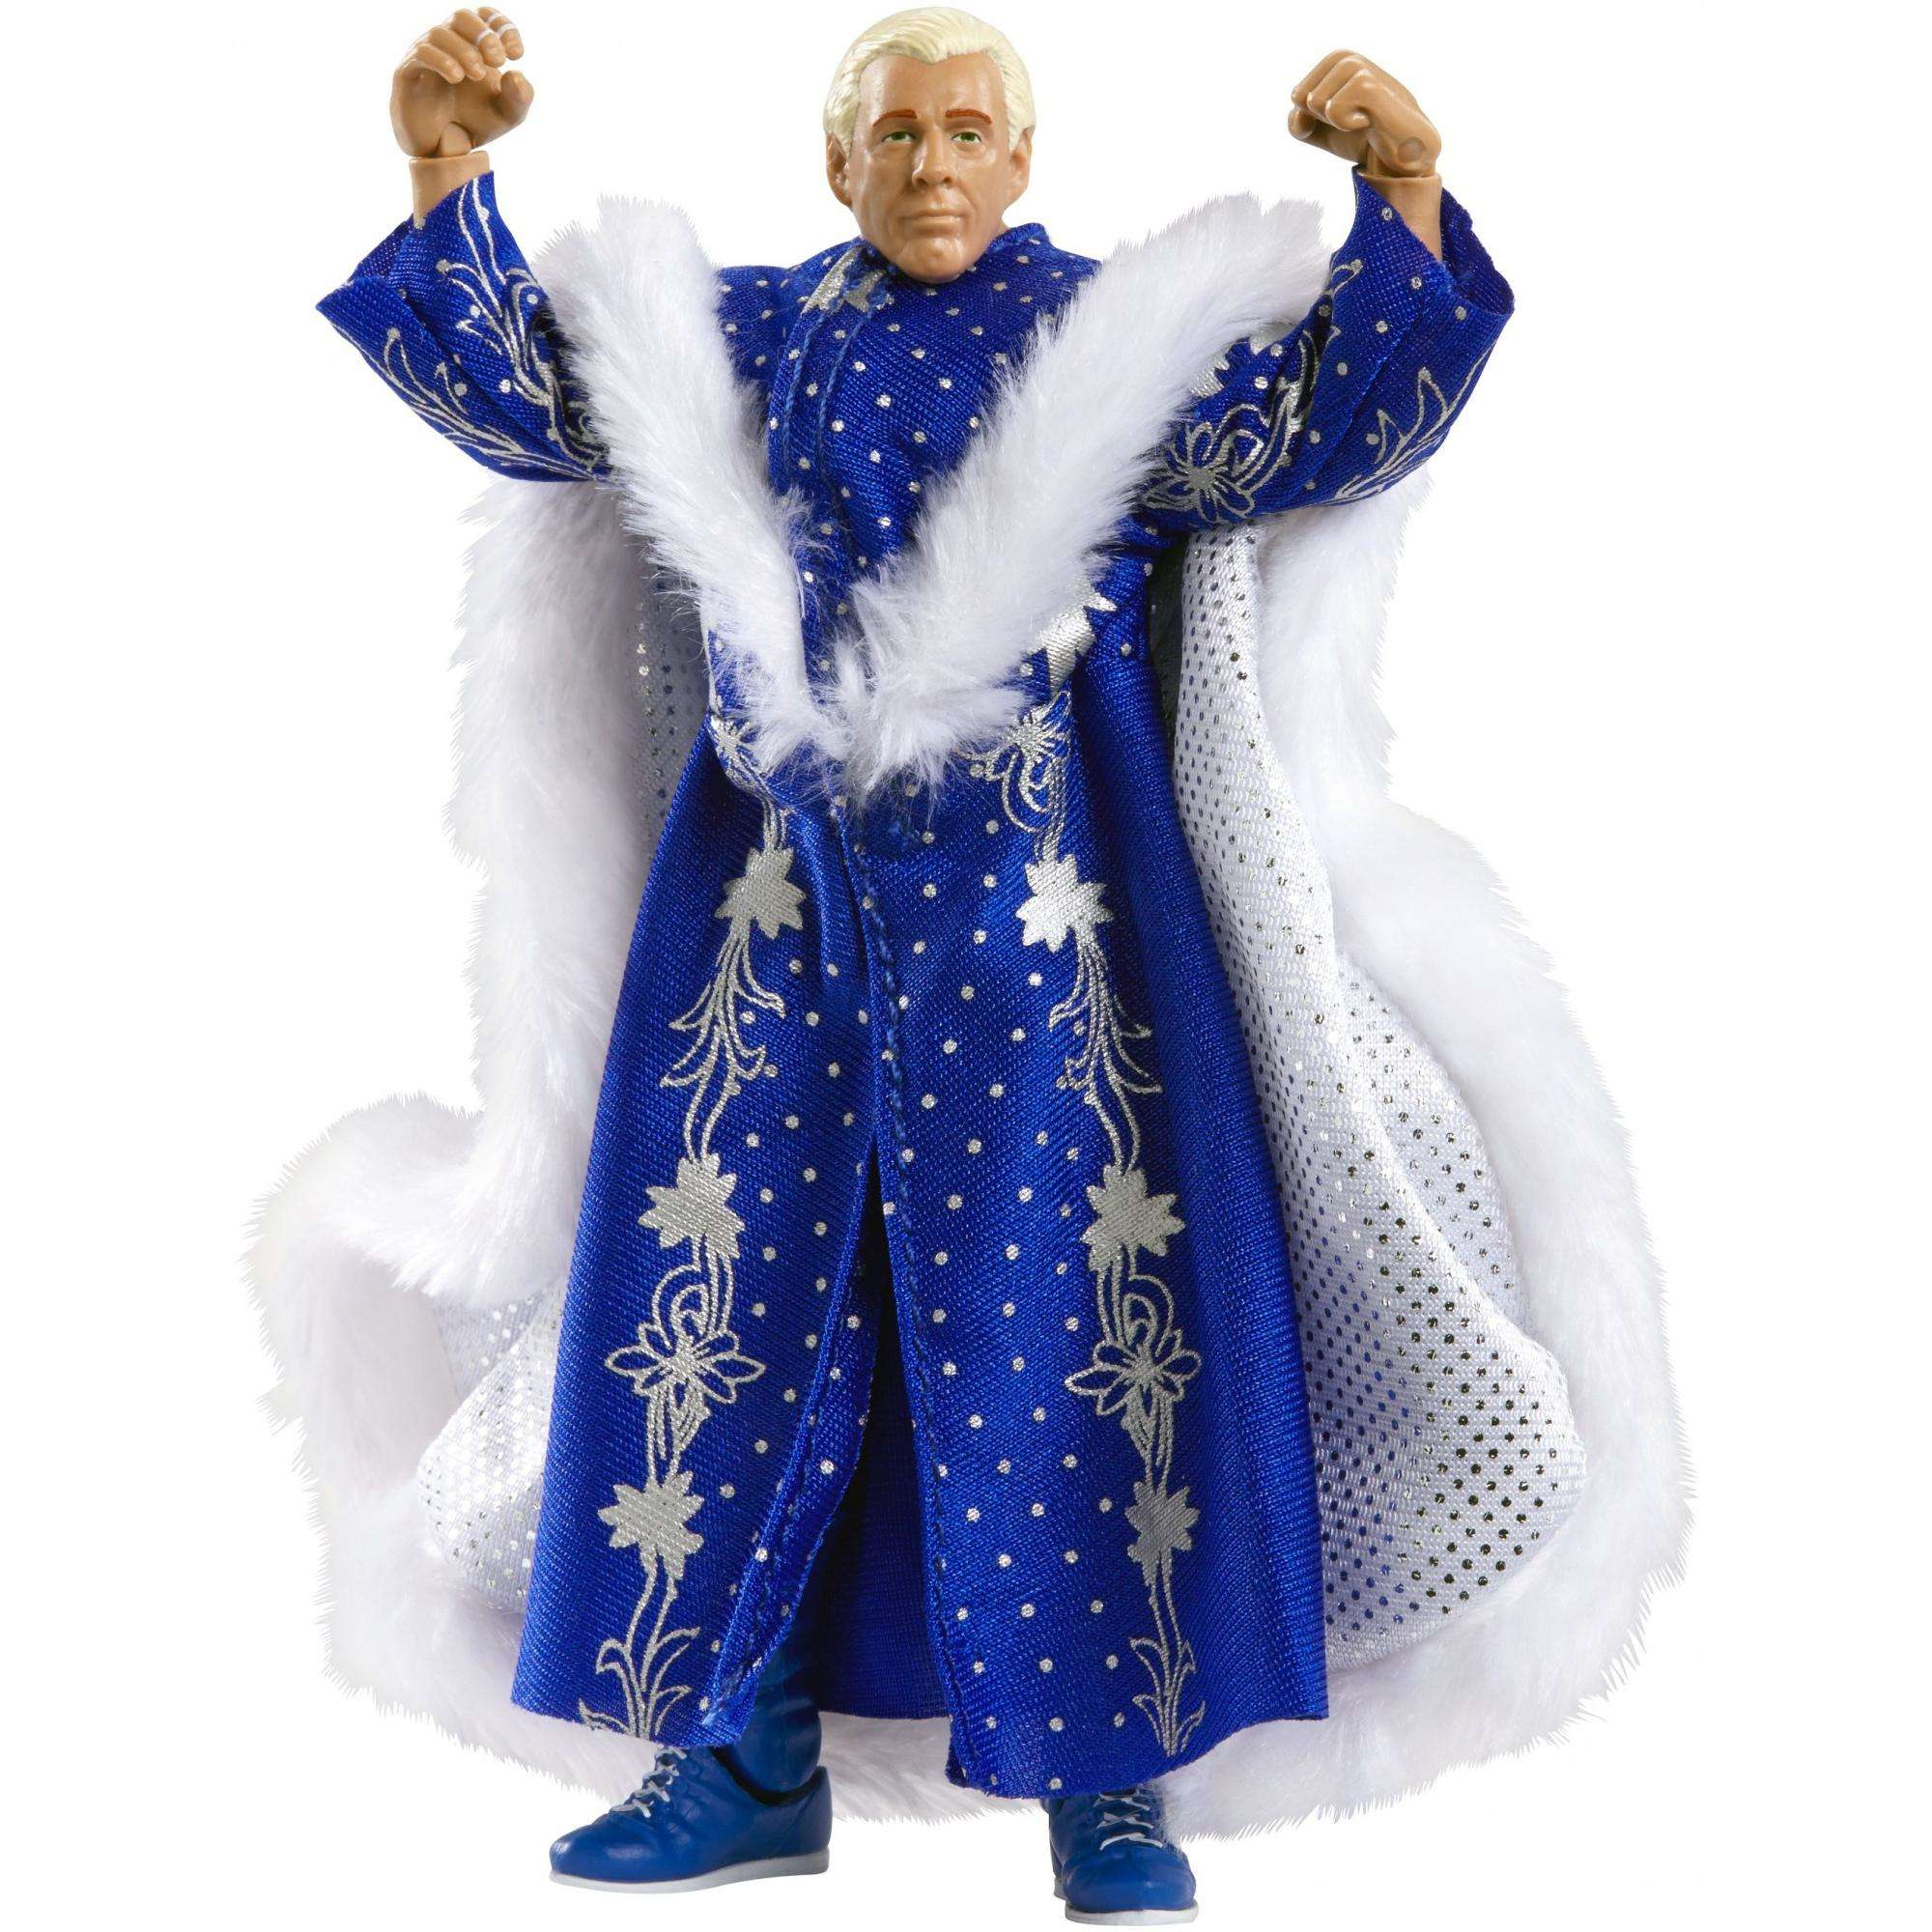 Blue Robe Ric Flair WWE Defining Moments WWE Toy Wrestling Action Figure by Generic